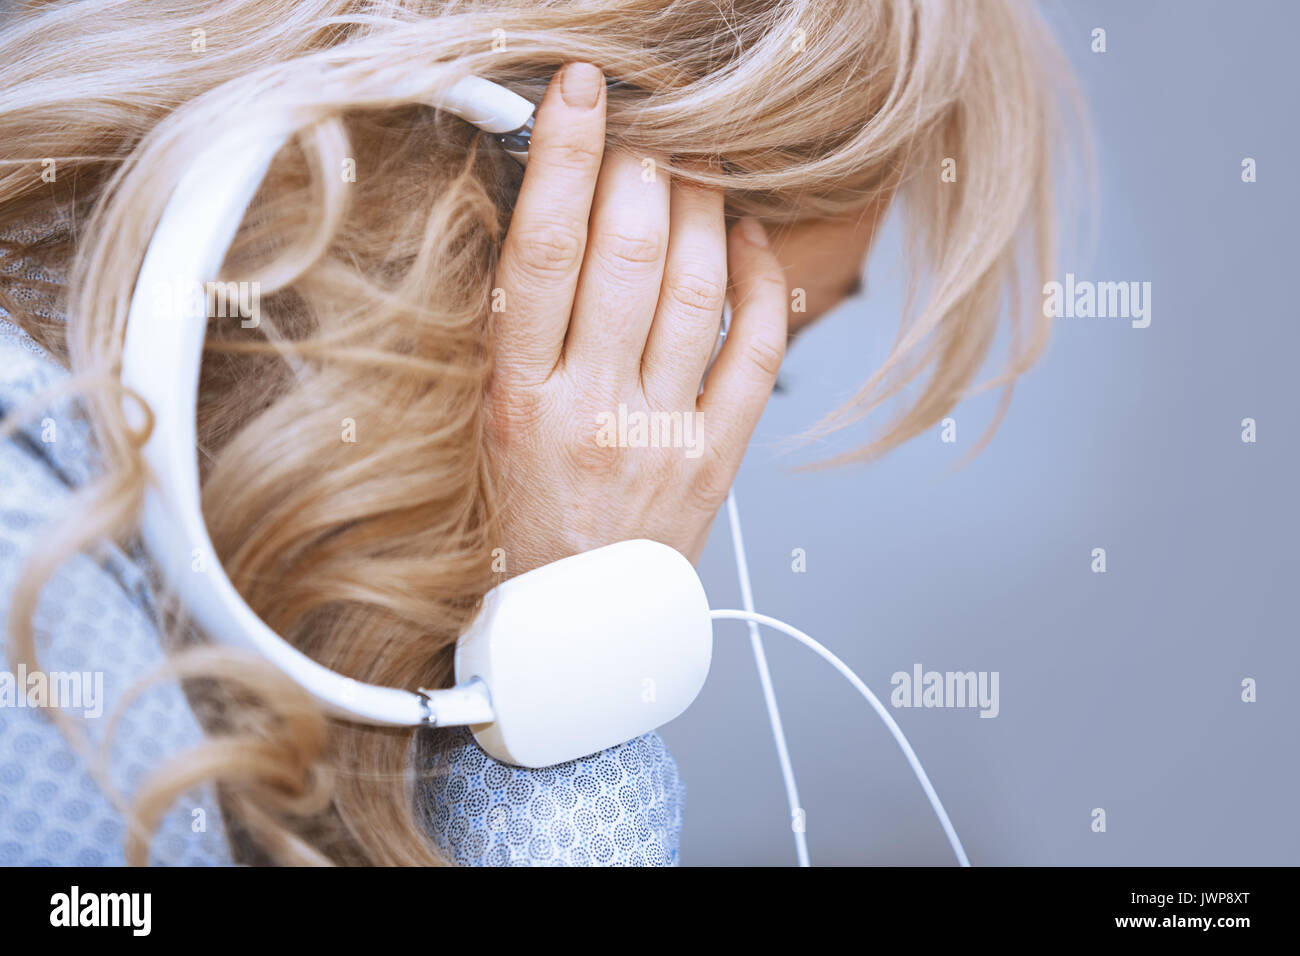 Blond woman listening music via headphones - Stock Image